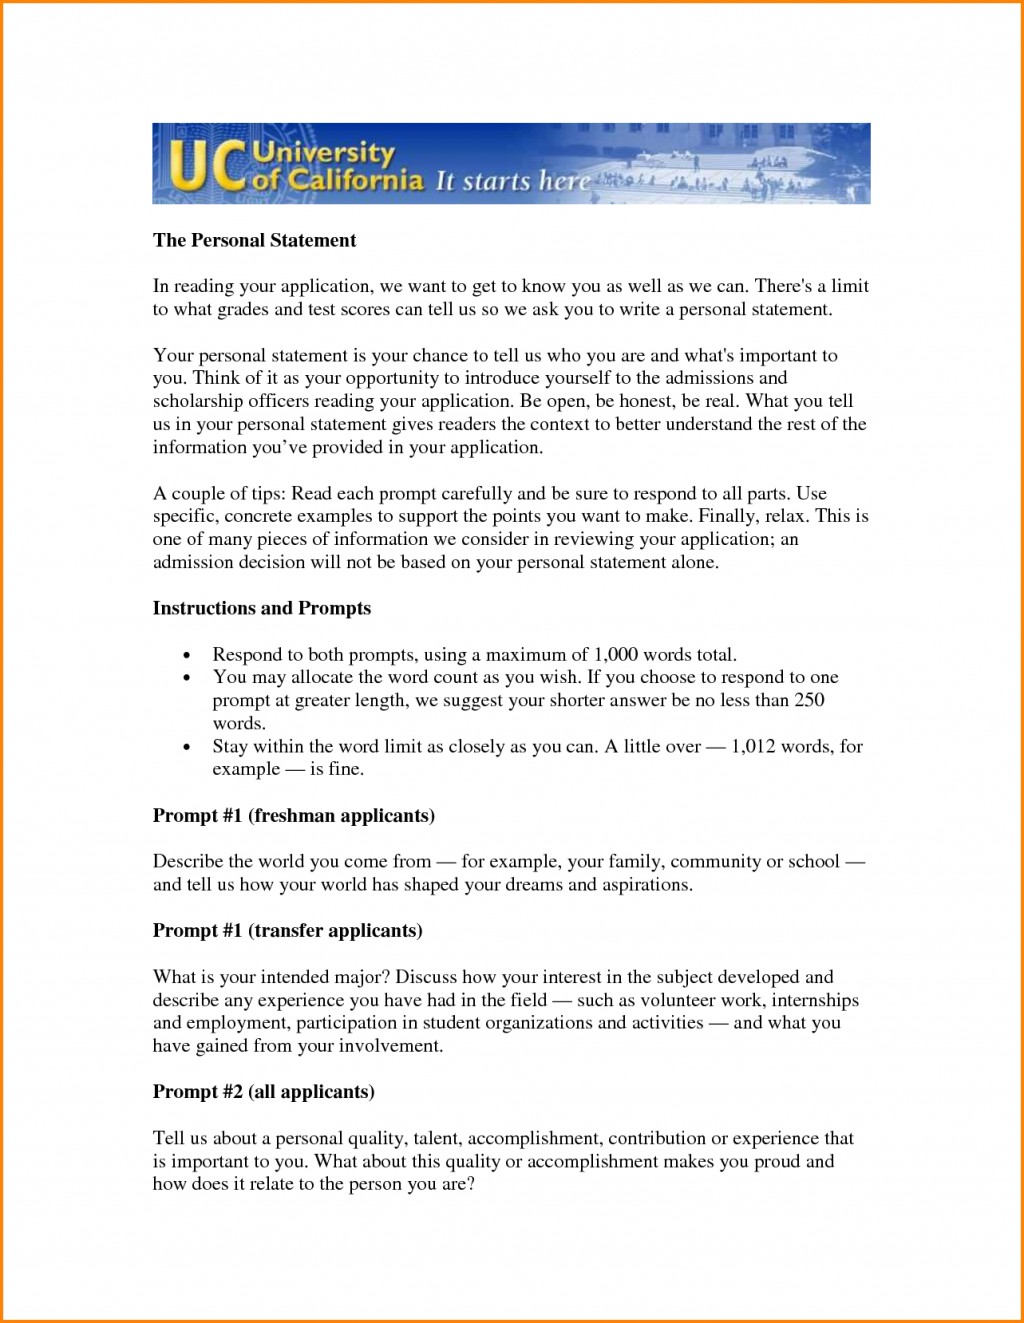 003 Essay Example College Word Limit 2520758773 Impressive Going Over Count Uf Large